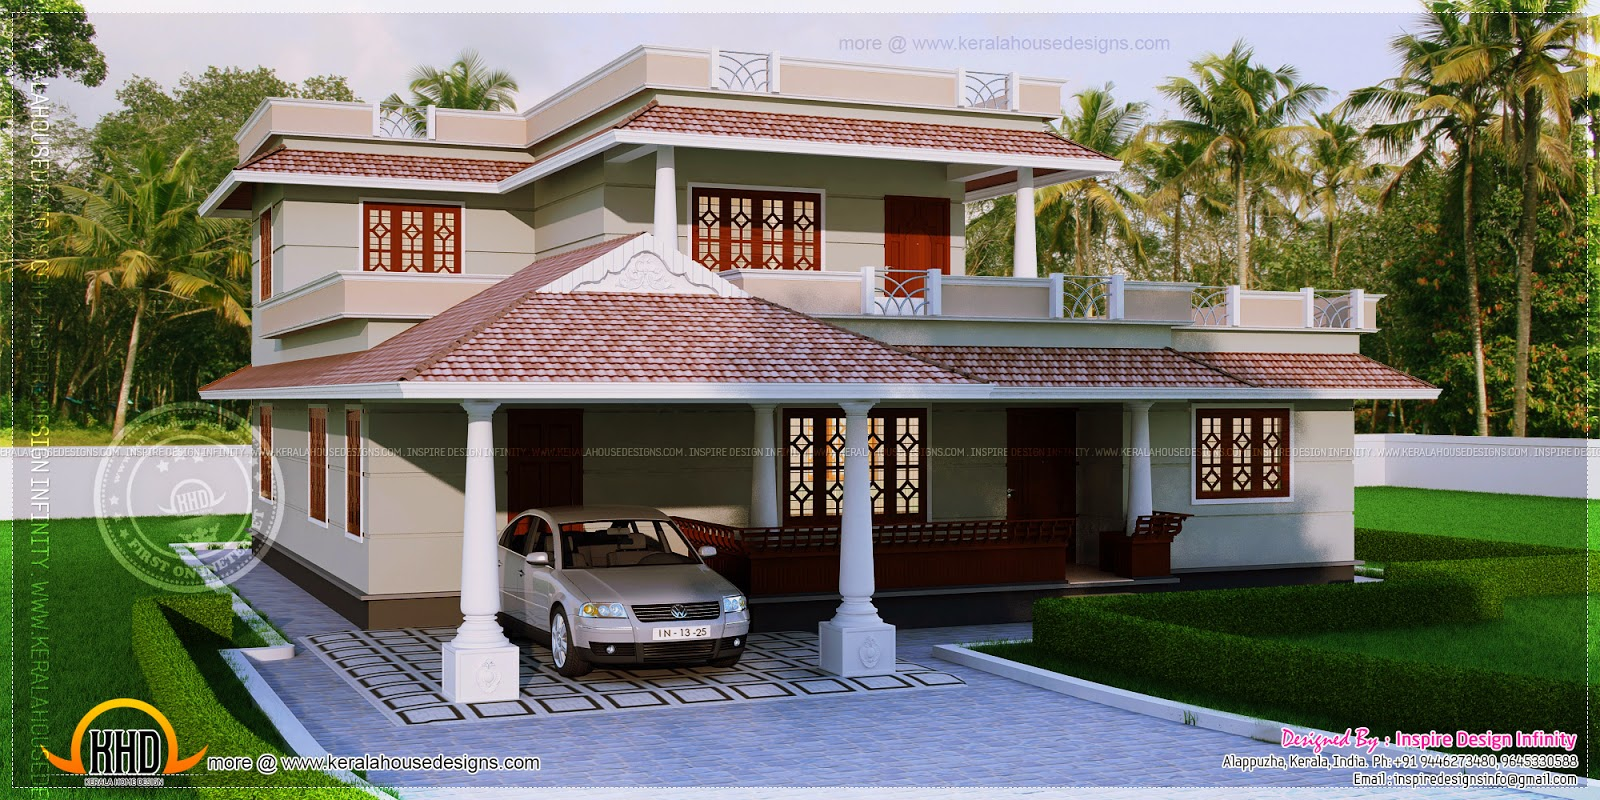 4 bedroom kerala style house in 300 square yards kerala home design and floor plans. Black Bedroom Furniture Sets. Home Design Ideas